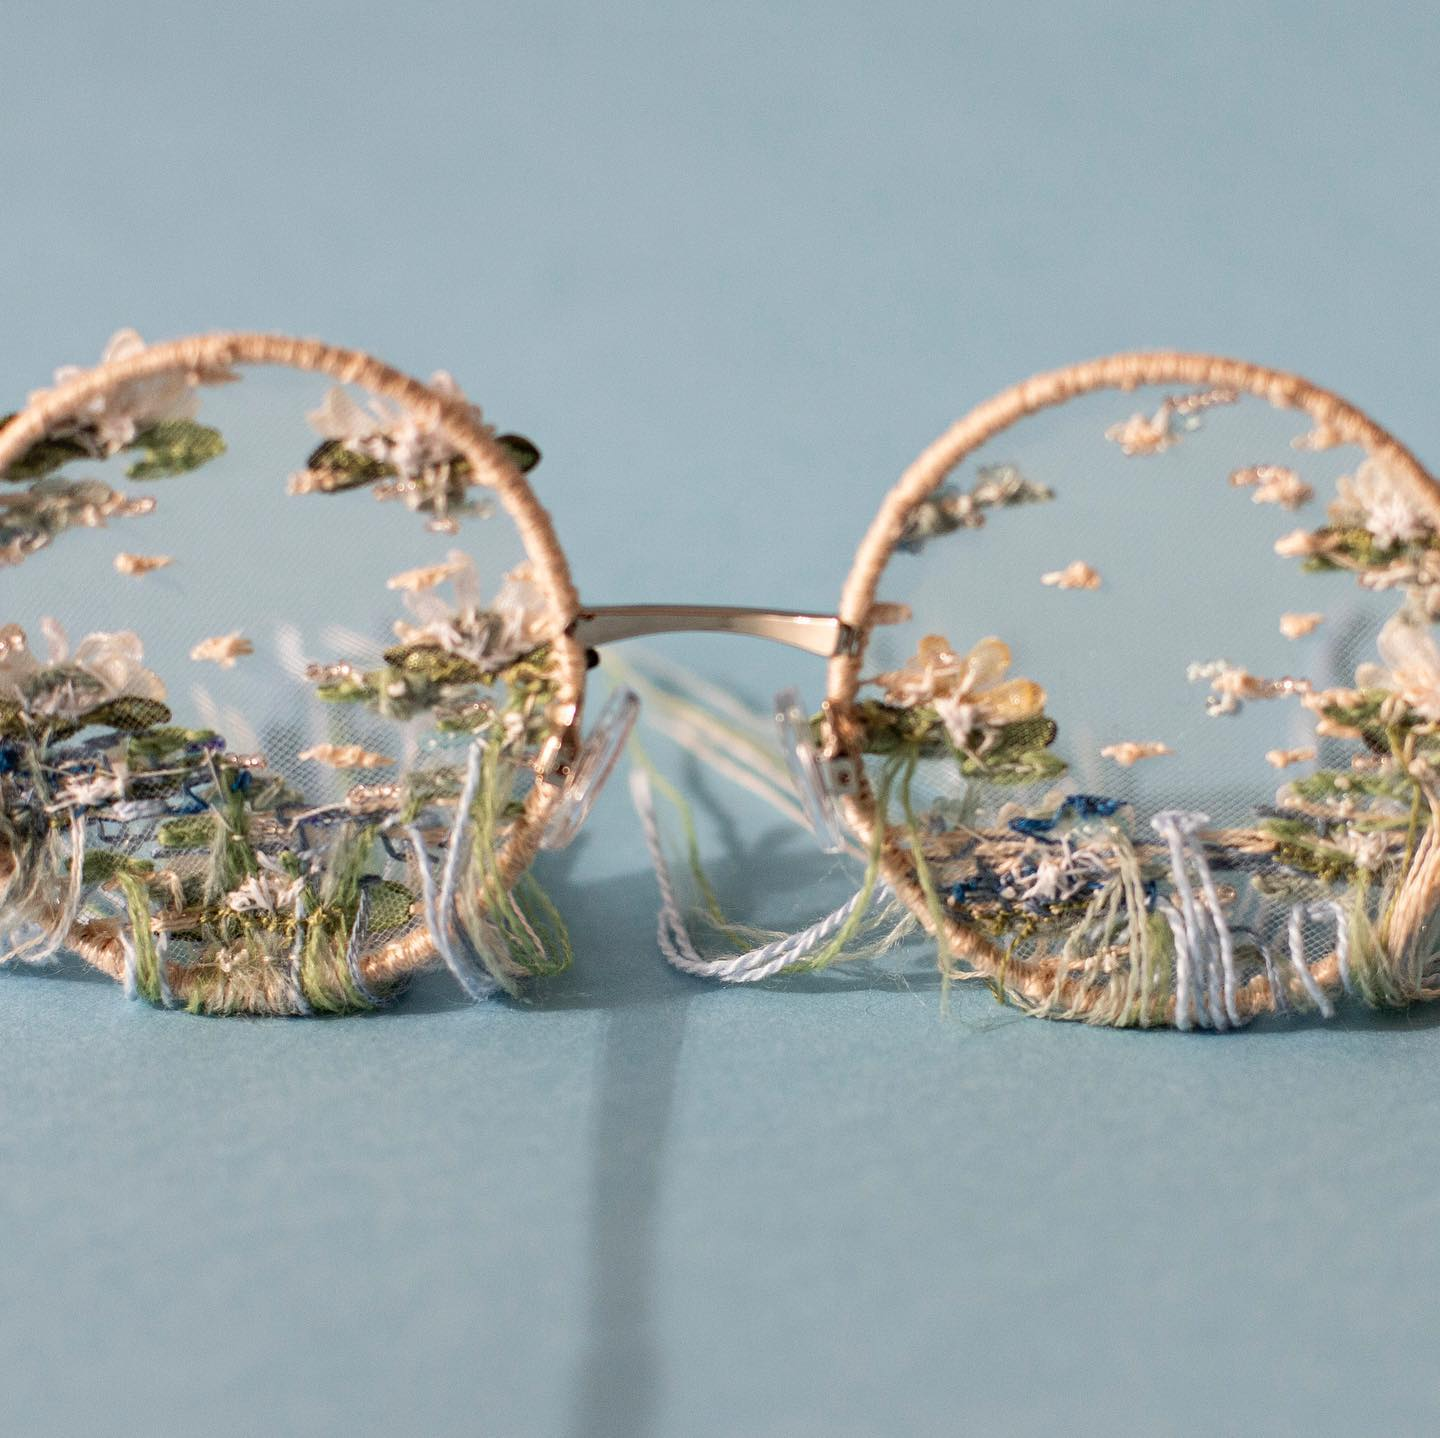 Embroidered glasses by Pola Laamanen